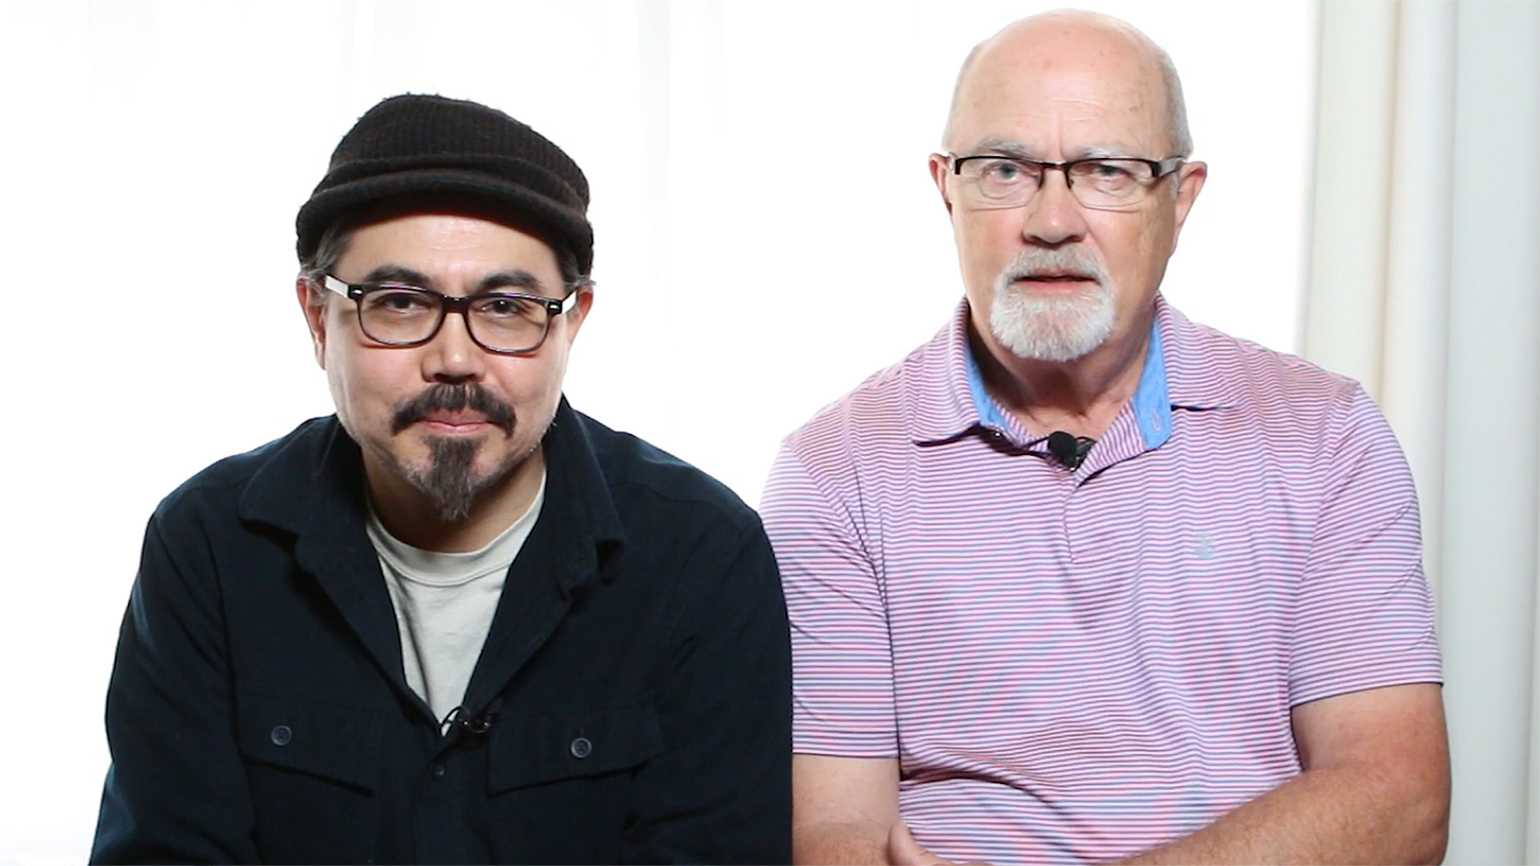 Robert Nore (right) and his son Son Vo